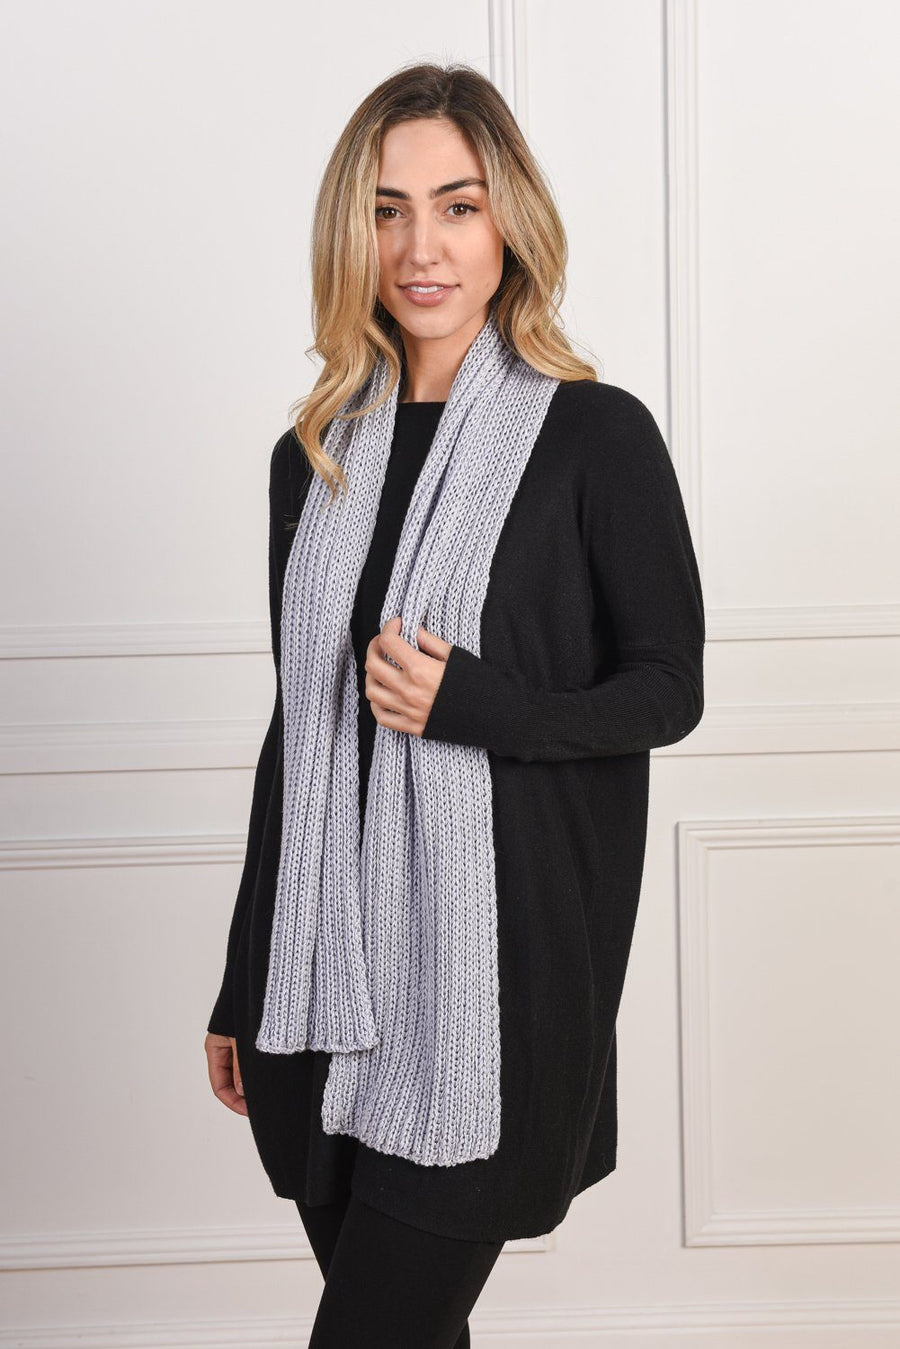 Stelle Scarf | Lavender Scarf Gray.Label